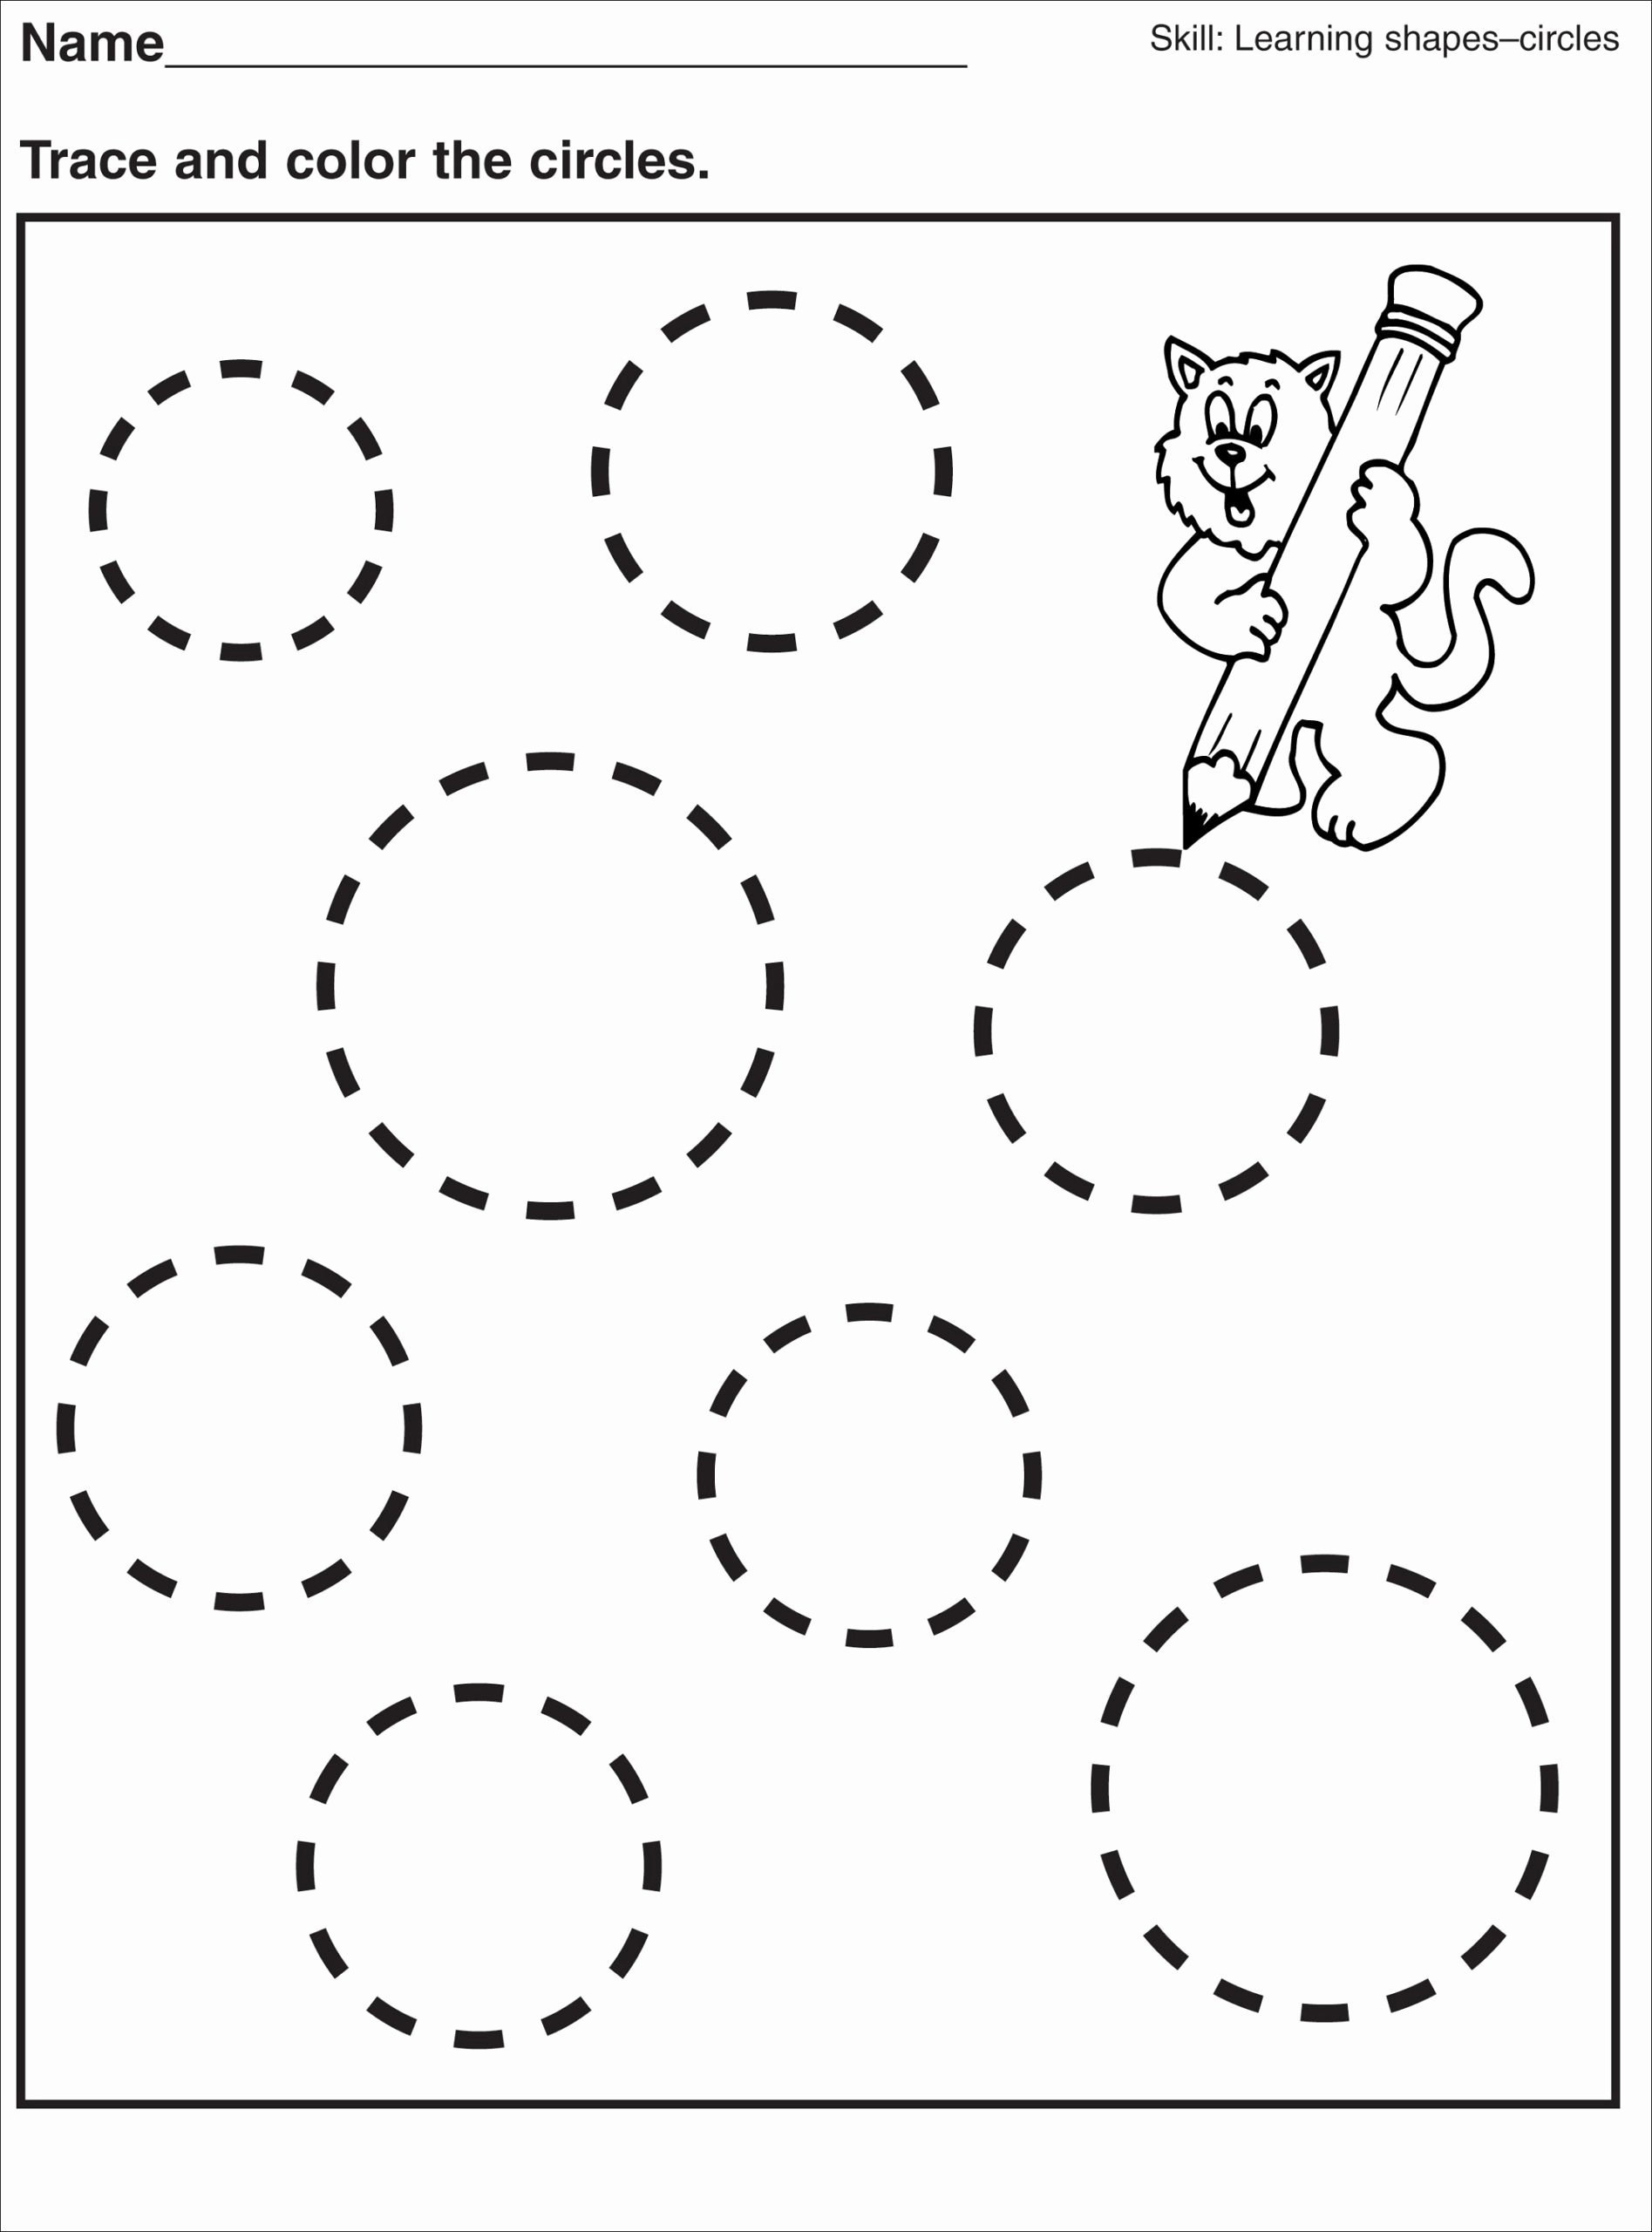 Shapes Tracing Worksheets for Preschoolers top Math Worksheet Math Worksheet Printable Letter Tracing